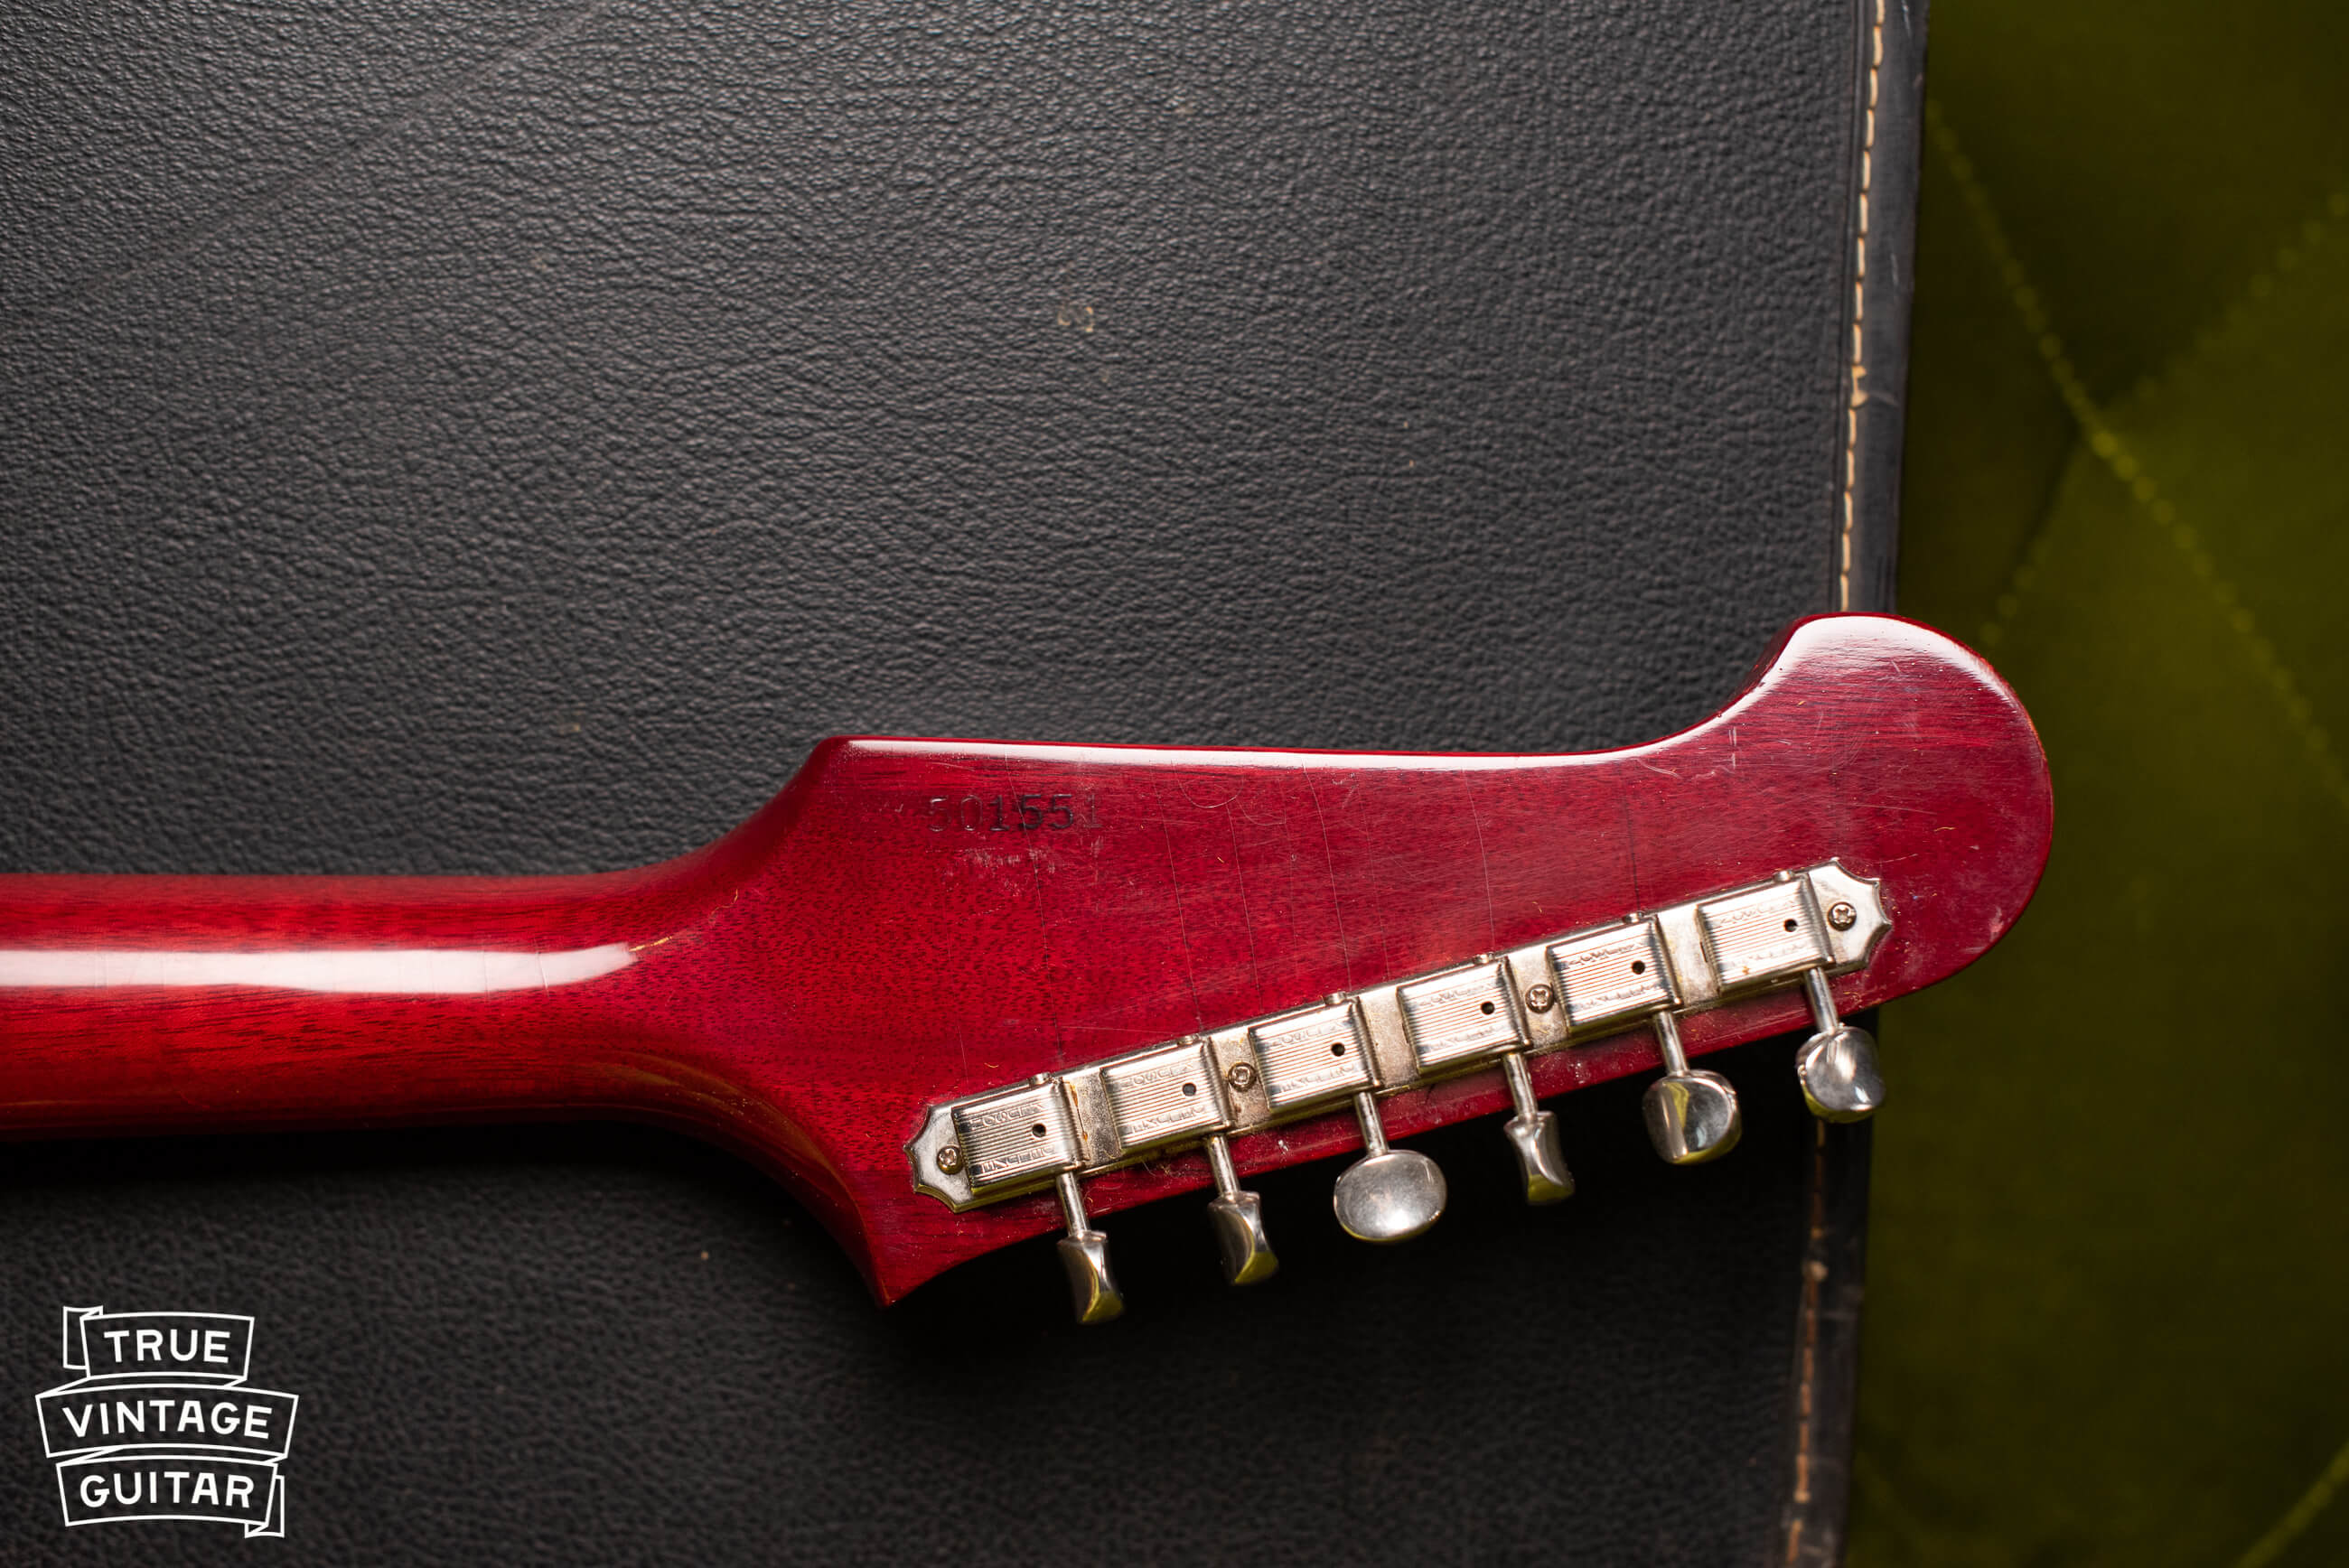 Gibson serial numbers pre-1975 for Firebird guitars